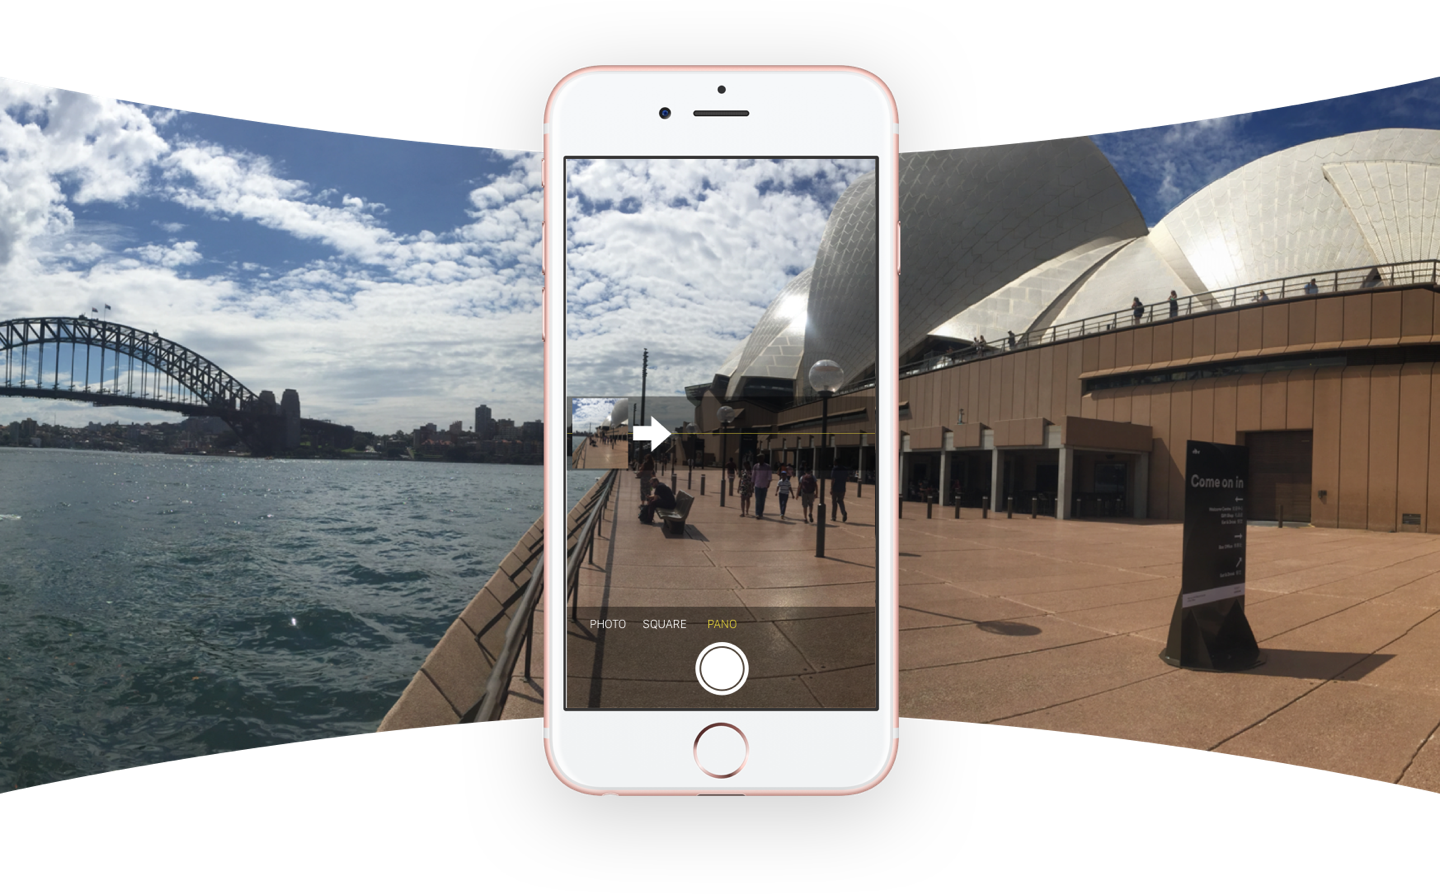 Taking a panoramic photo on your iPhone